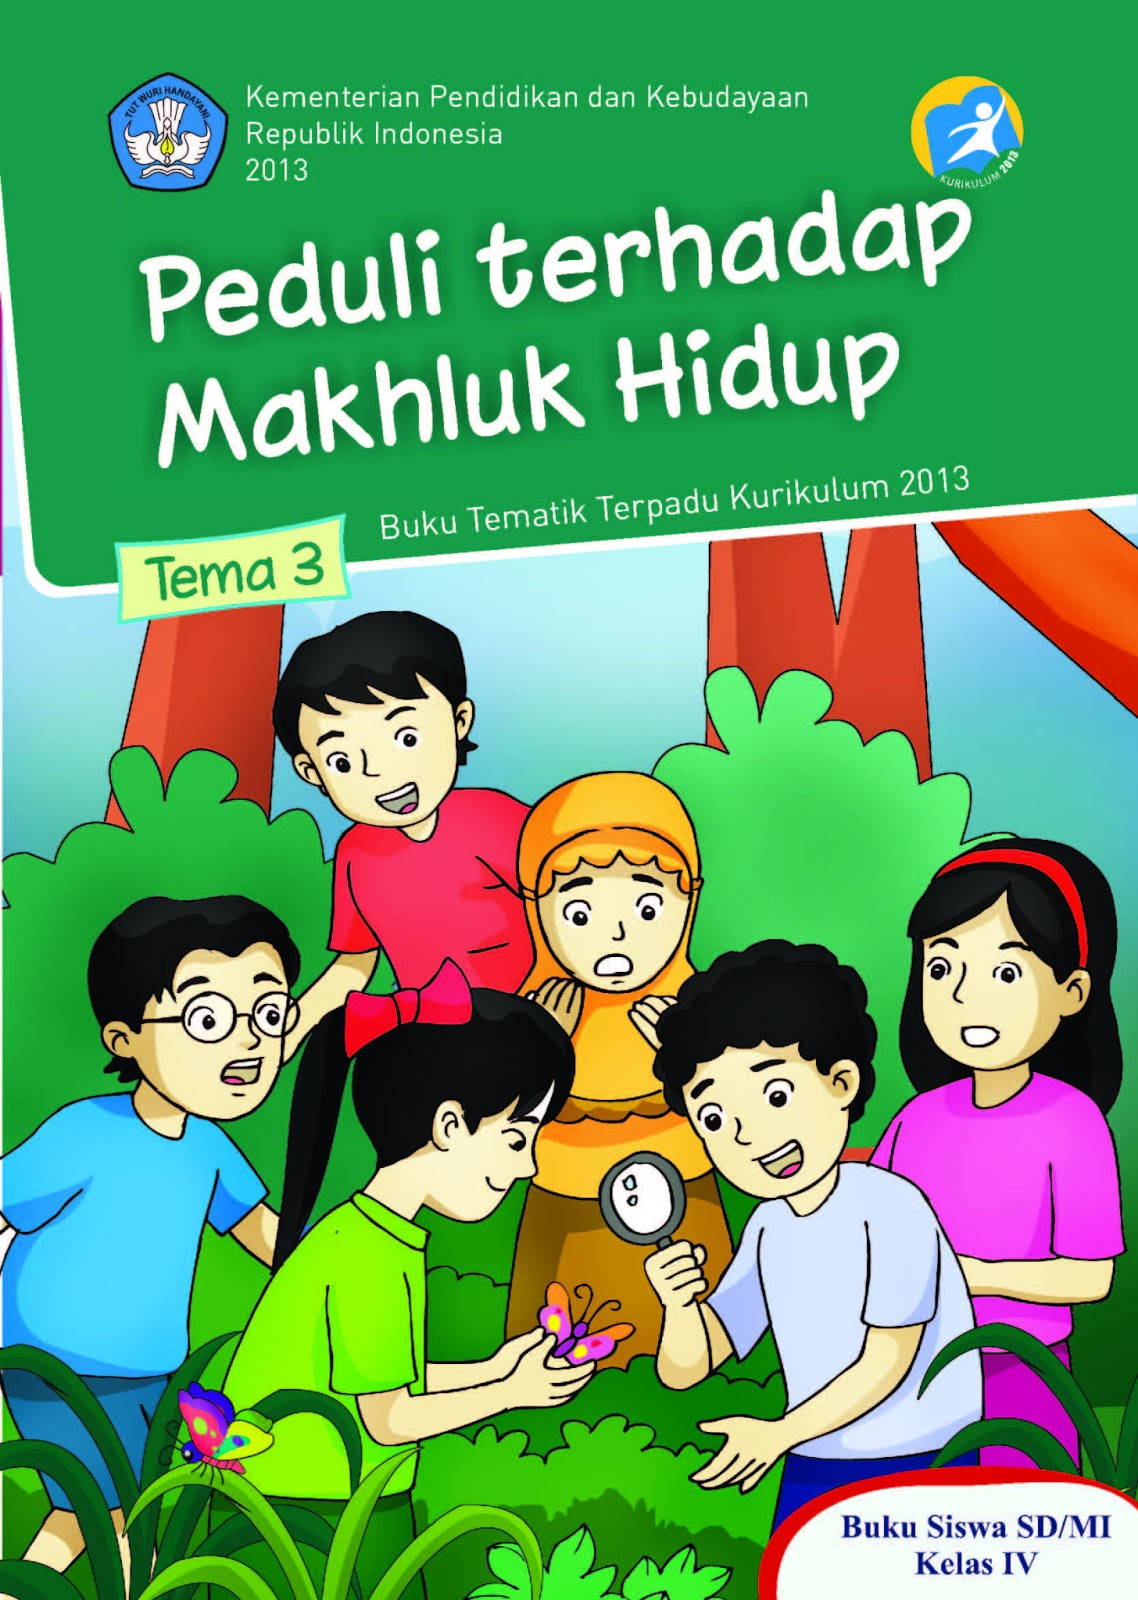 kementerian pendidikan nasional tahun 2013 download download 33 3 mb